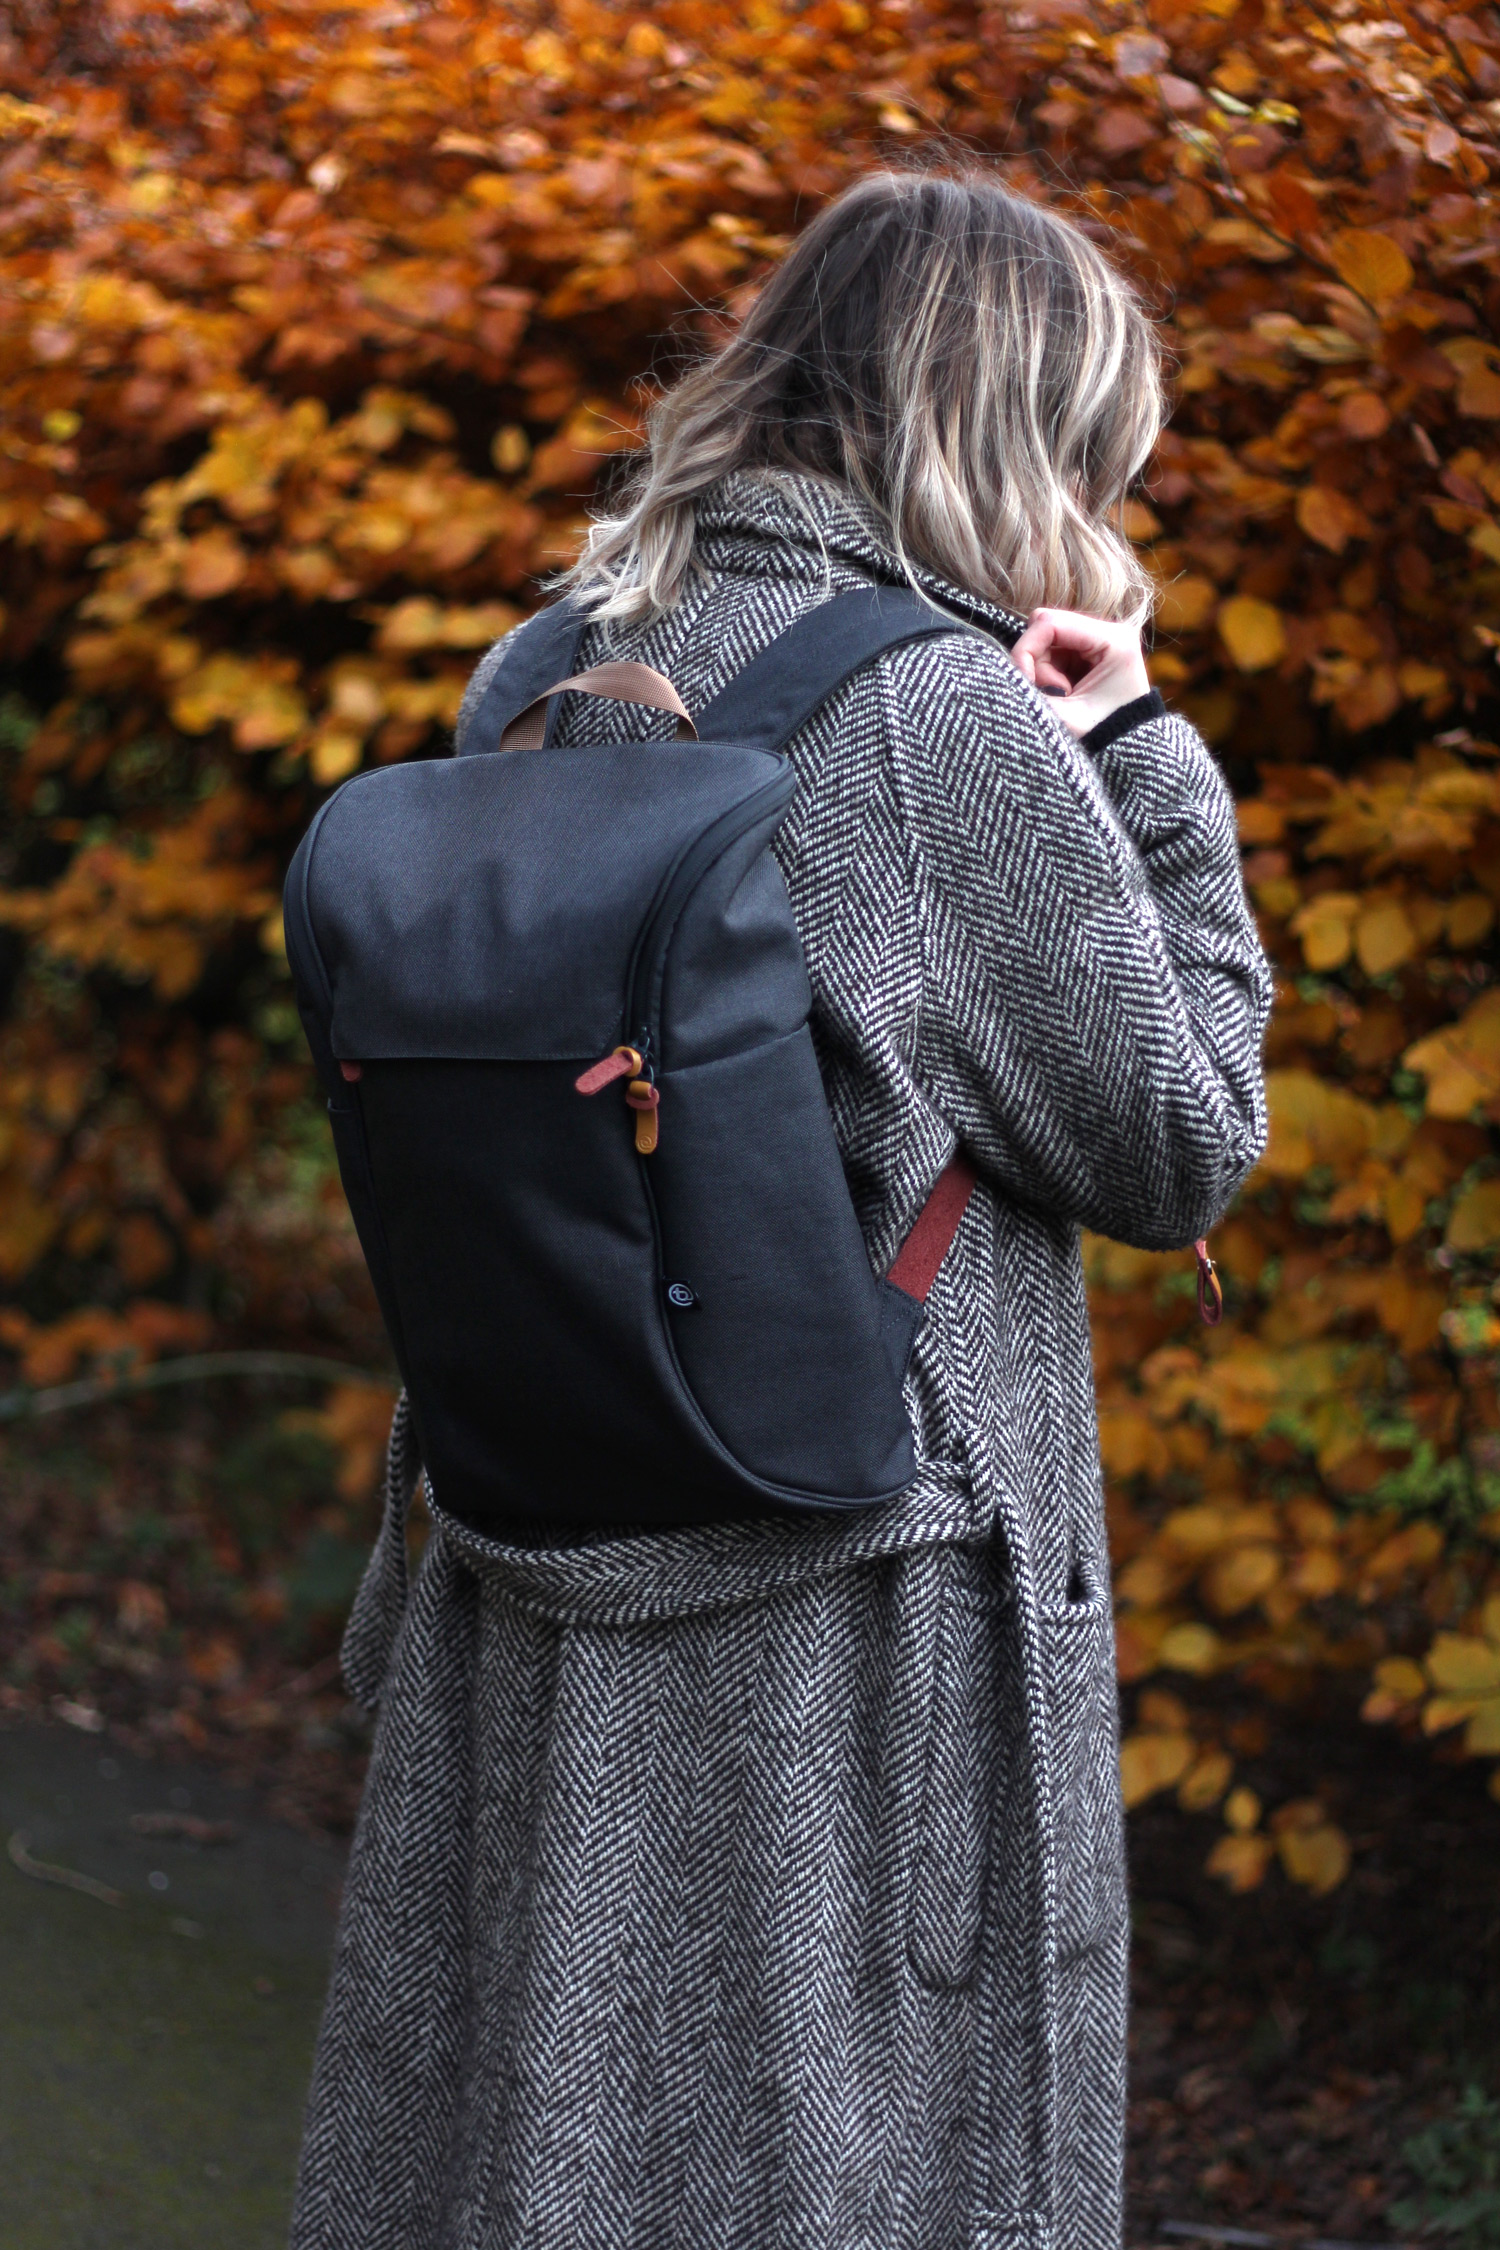 booq-grey-backpack-autumn-outfit-chloe-coat-acne-jensen-11